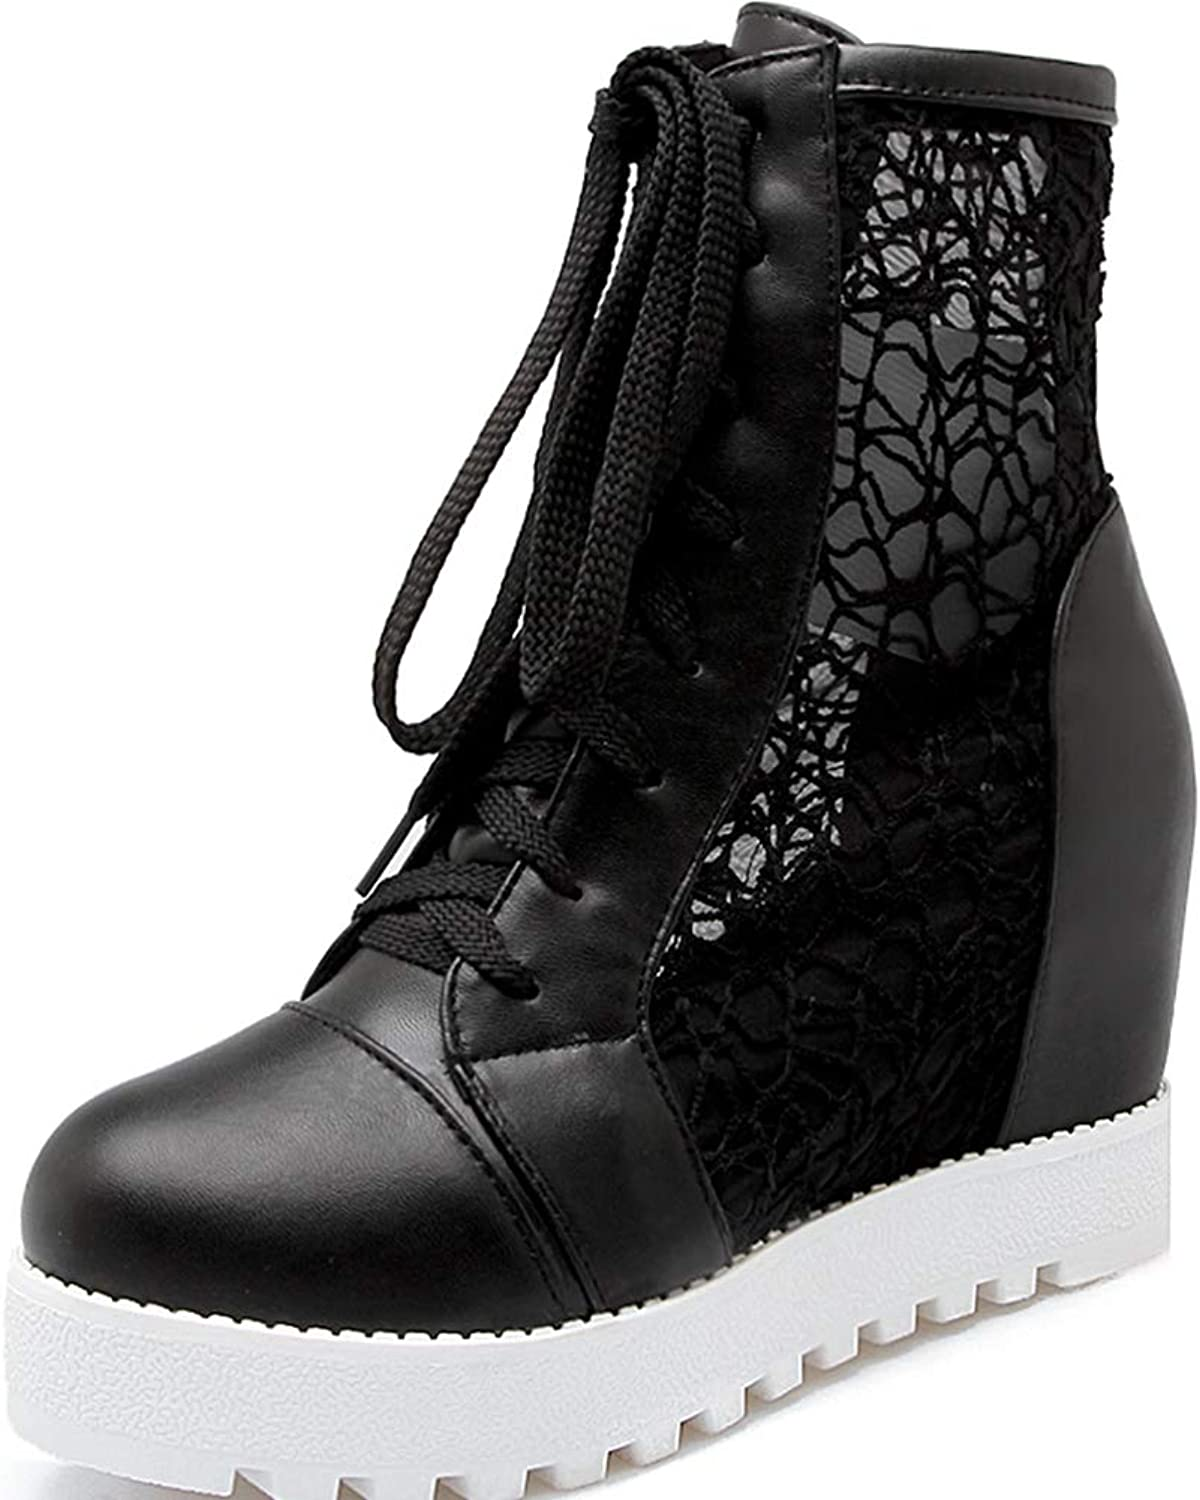 Vimisaoi Women Lace Pu Round Closed Toe Lace-Up Ankle High Increased Hidden Heel Pierced Short Boots